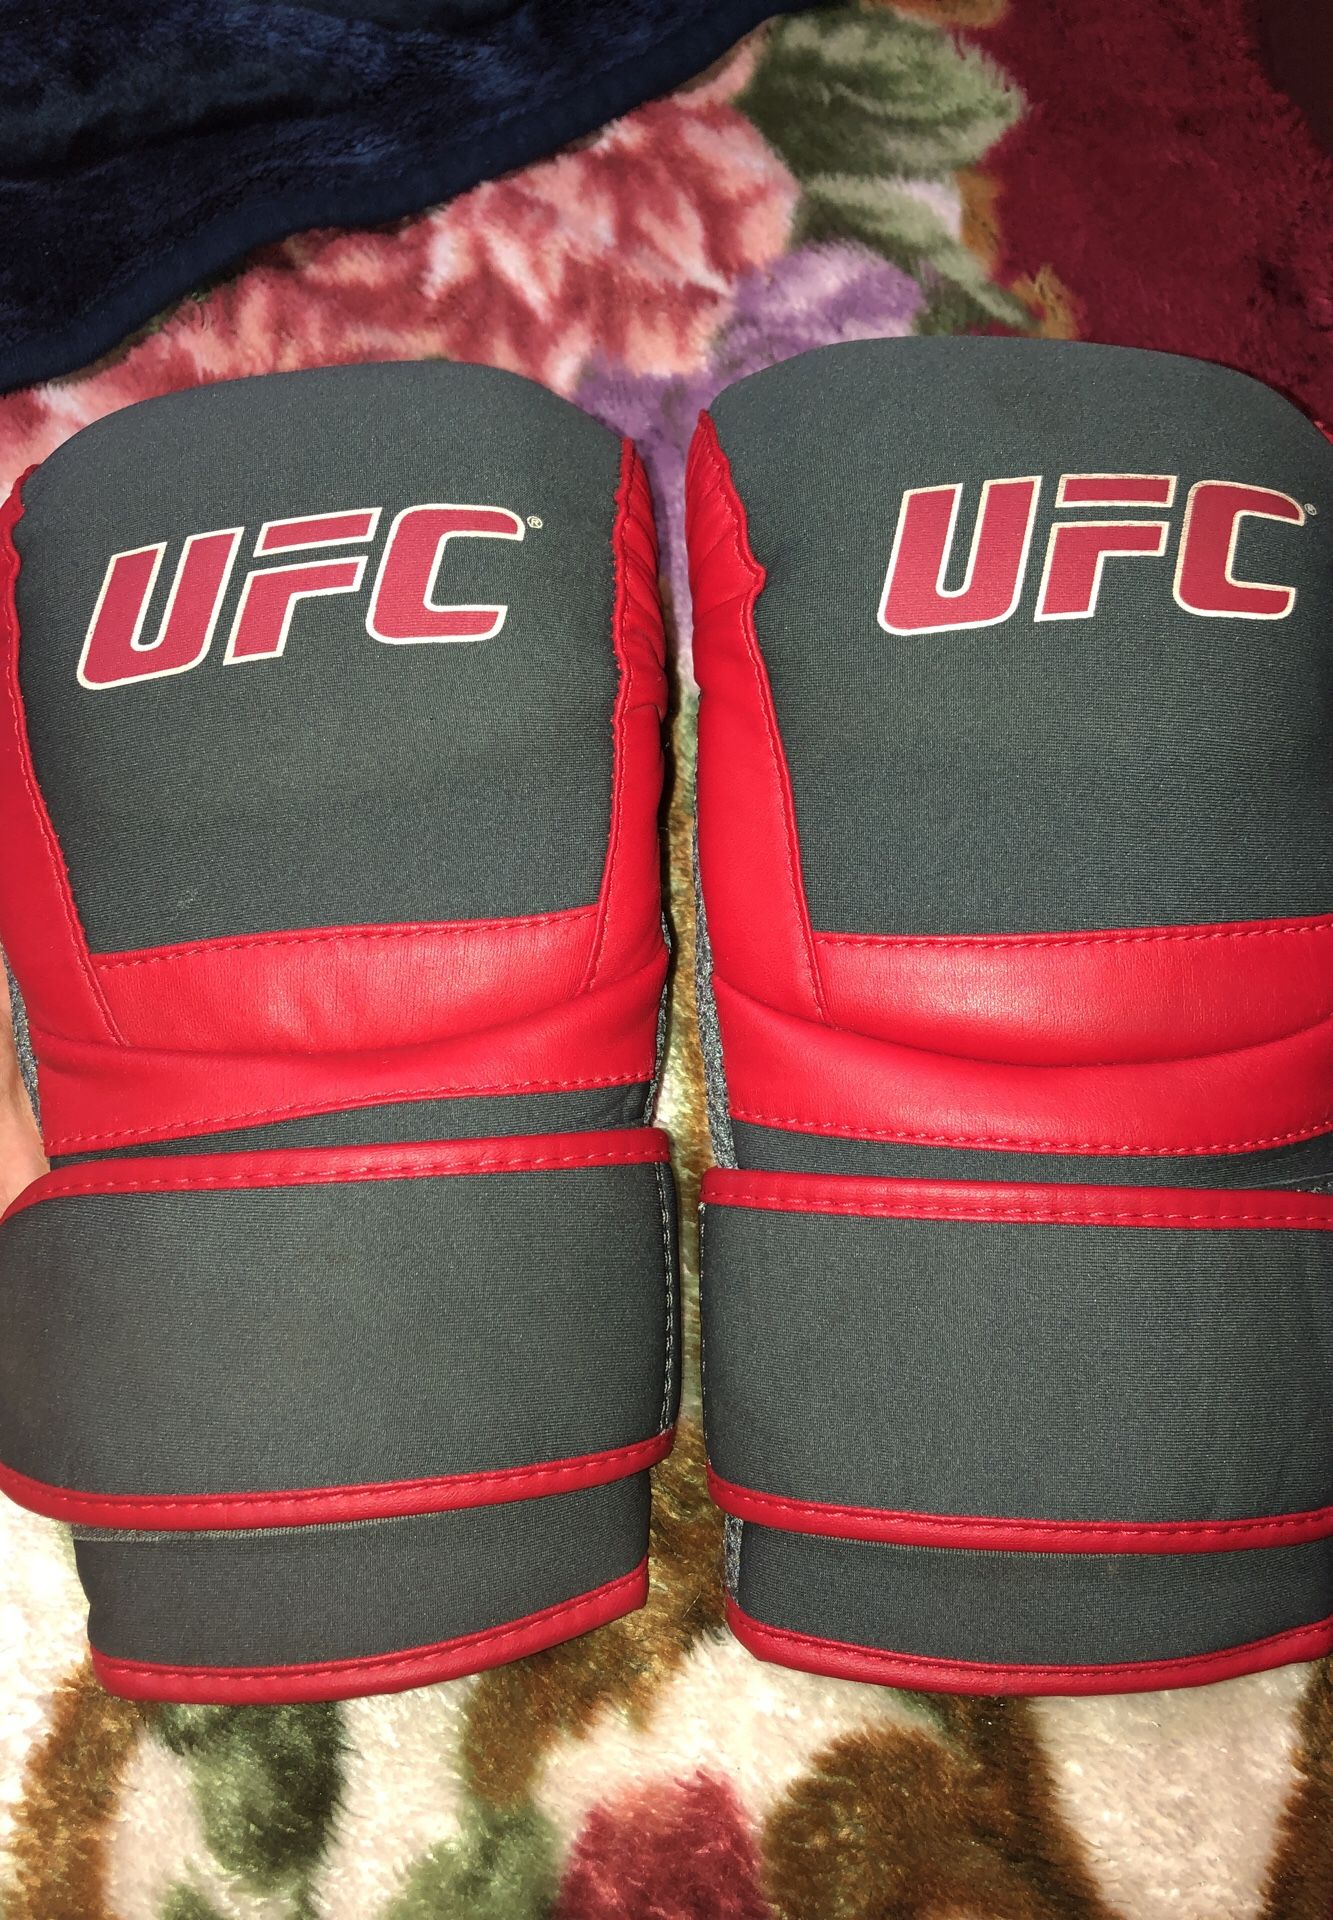 UFC ULTIMATE FIGHTING CHAMPIONSHIP BOXING GLOVES